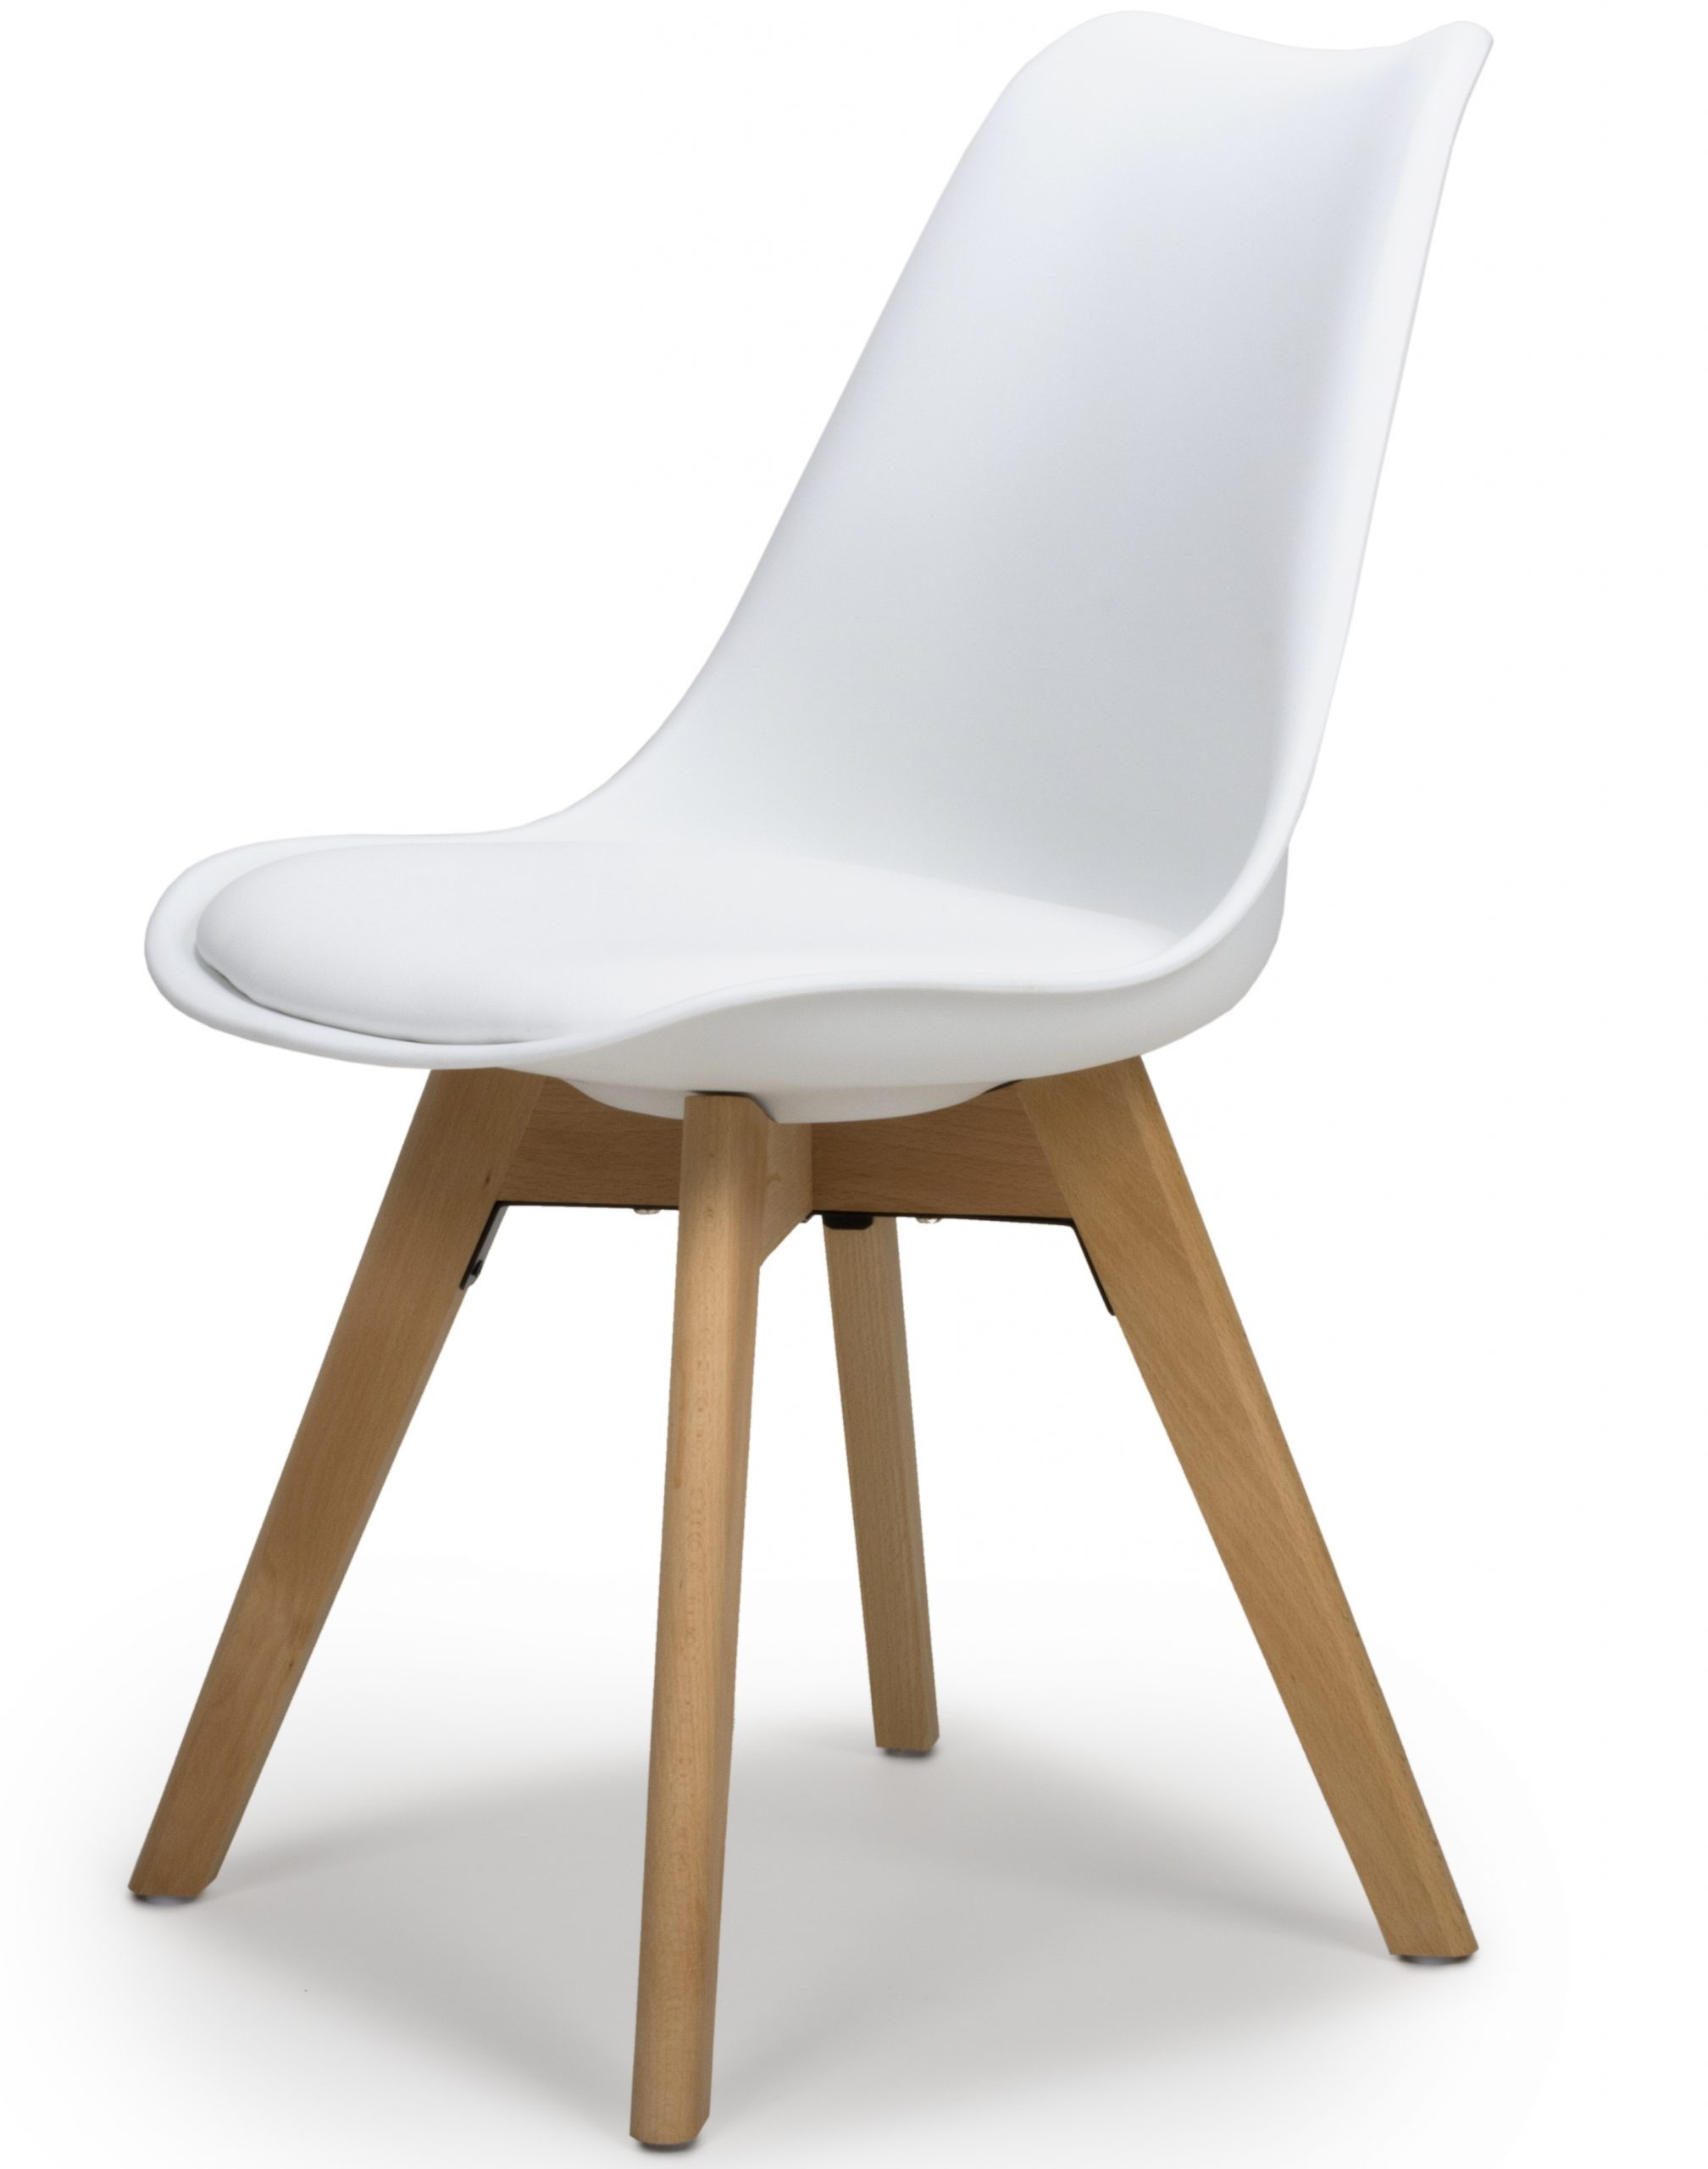 Urban White Molded plastic dining chair